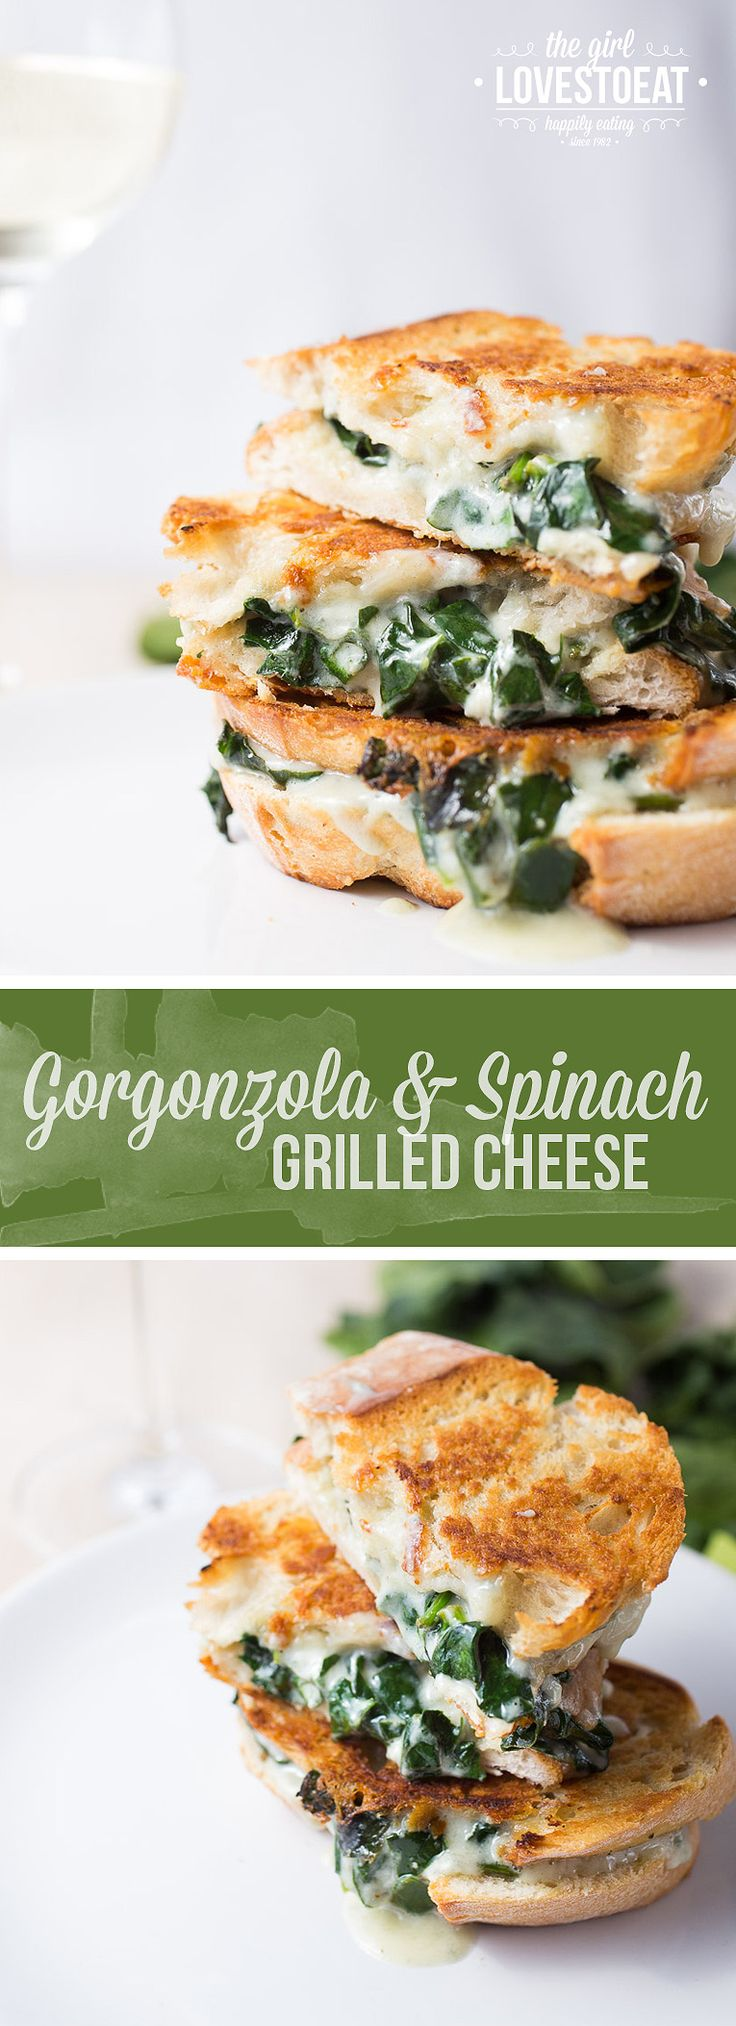 Gorgonzola with spinach grilled cheese